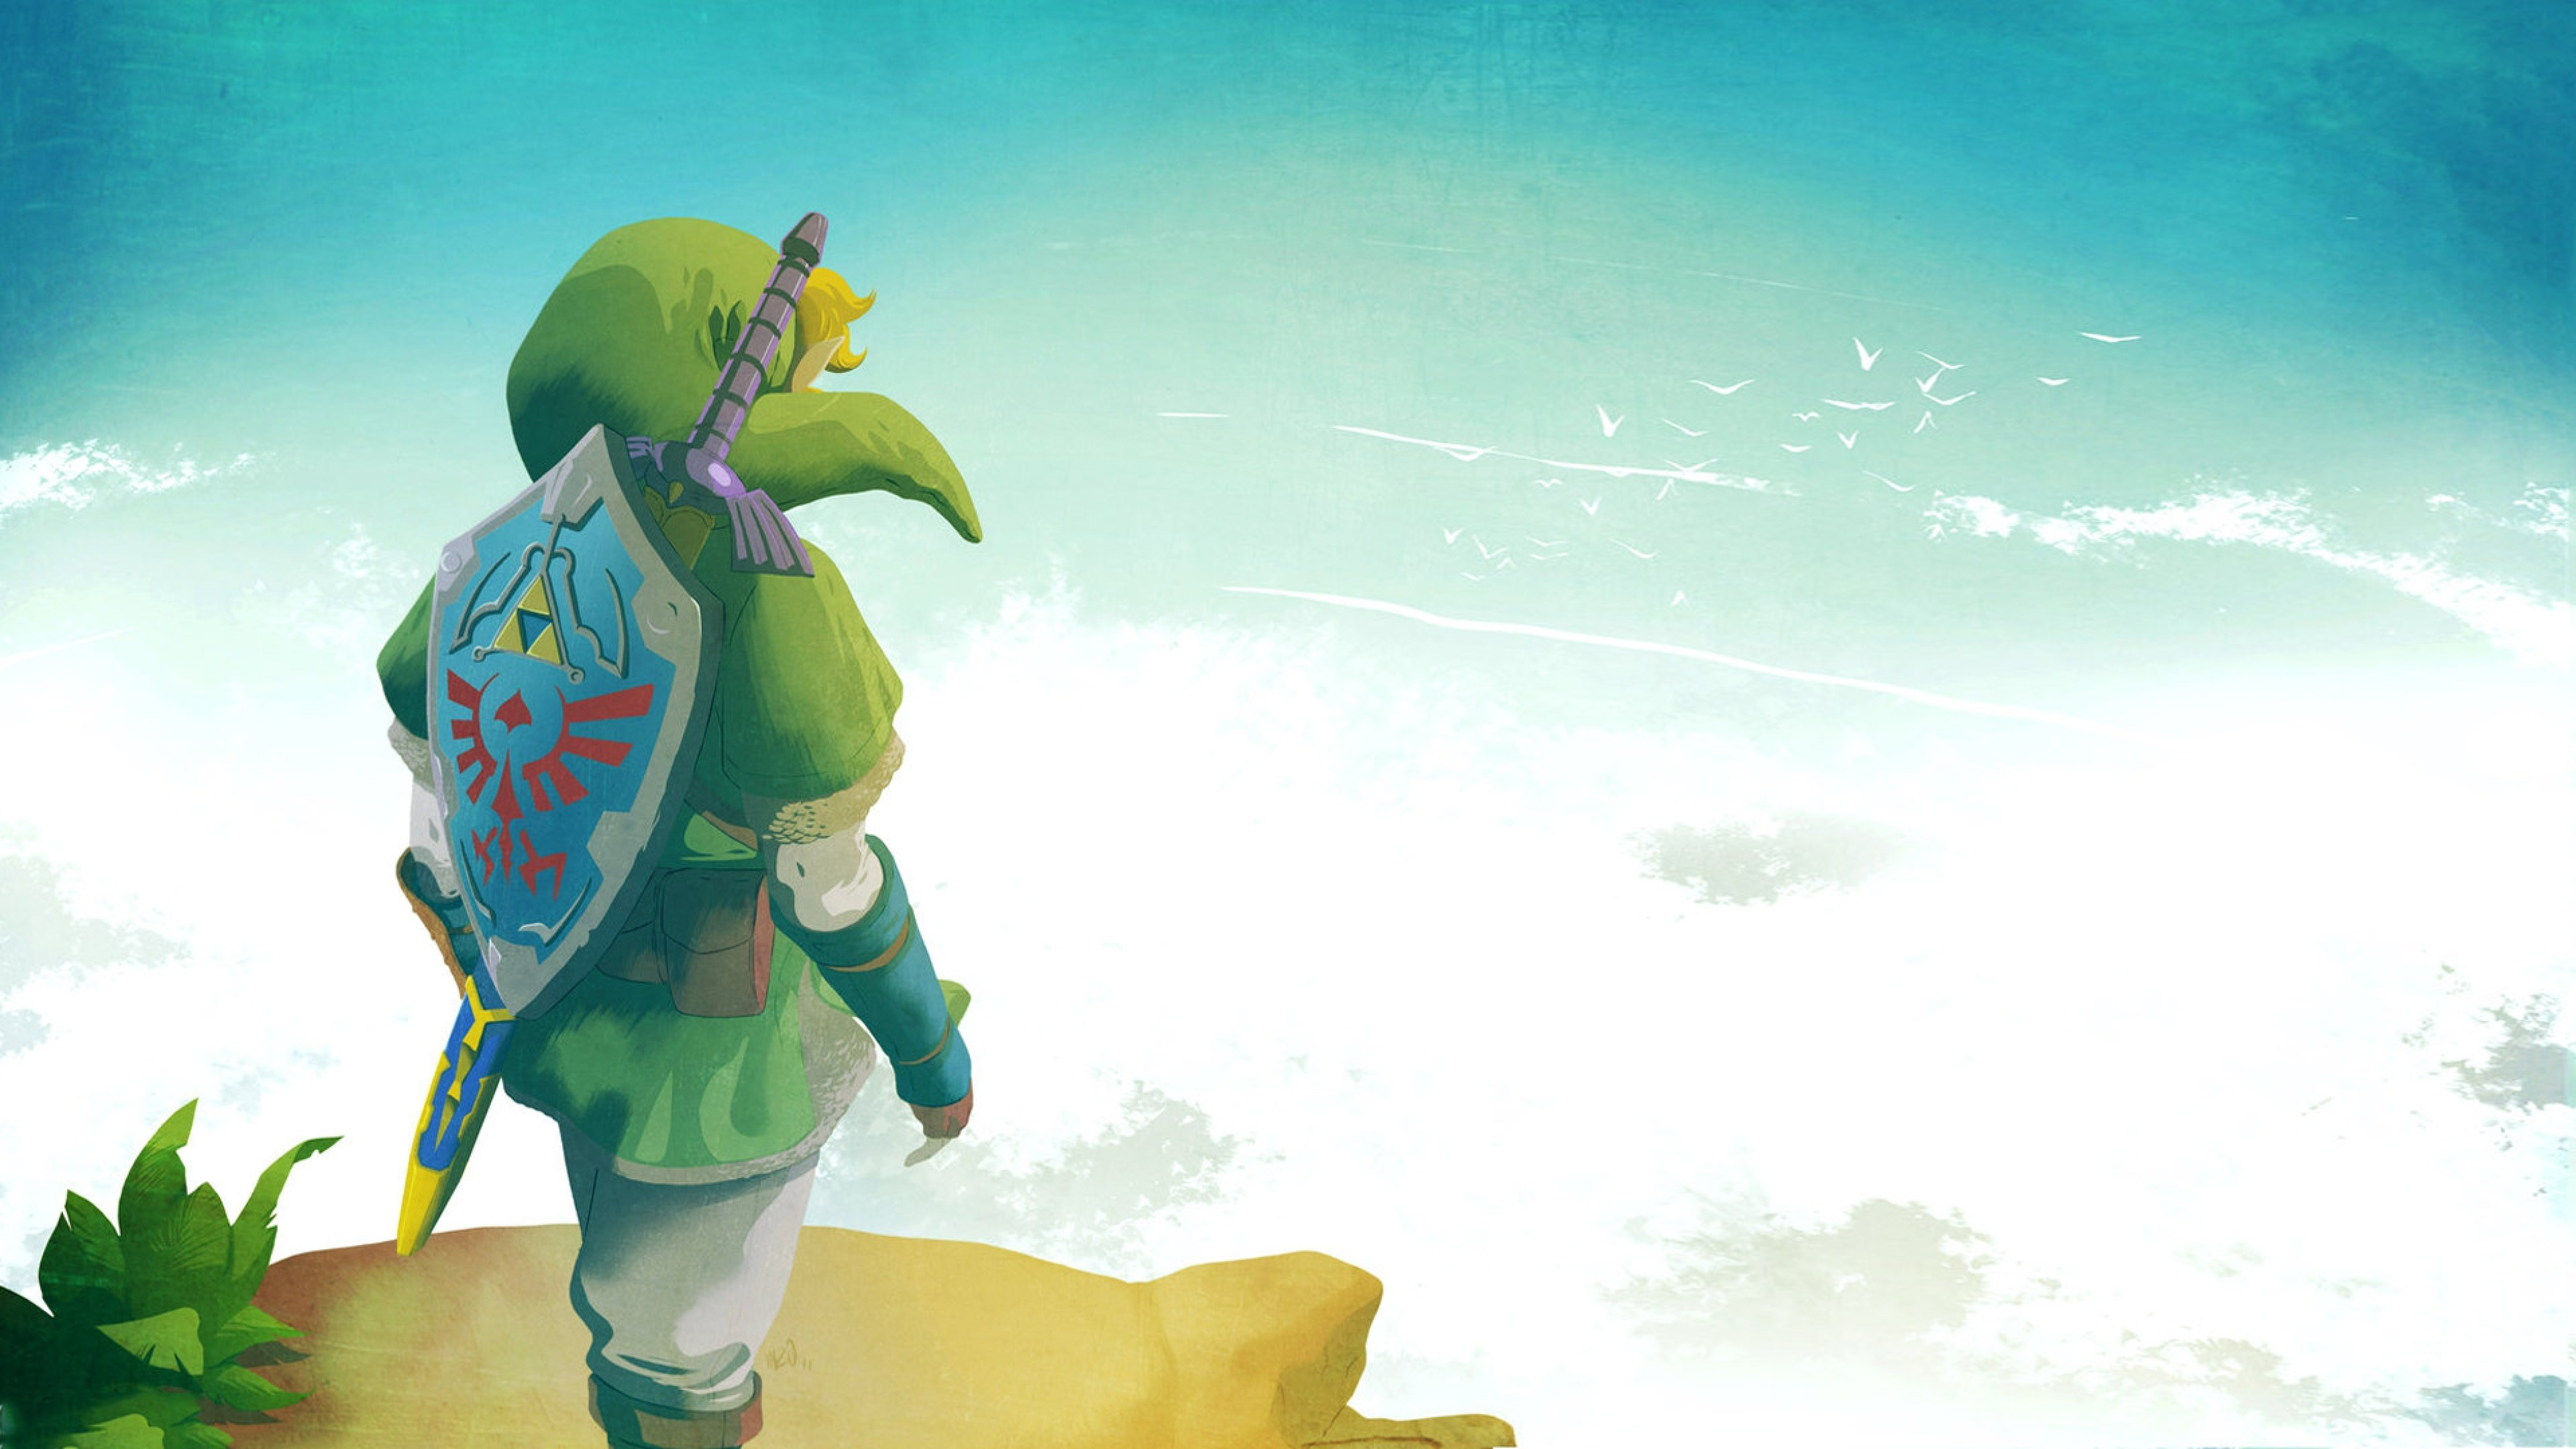 3840x2160 Wallpaper The Legend Of Zelda Elf Shield Sky Link 4K